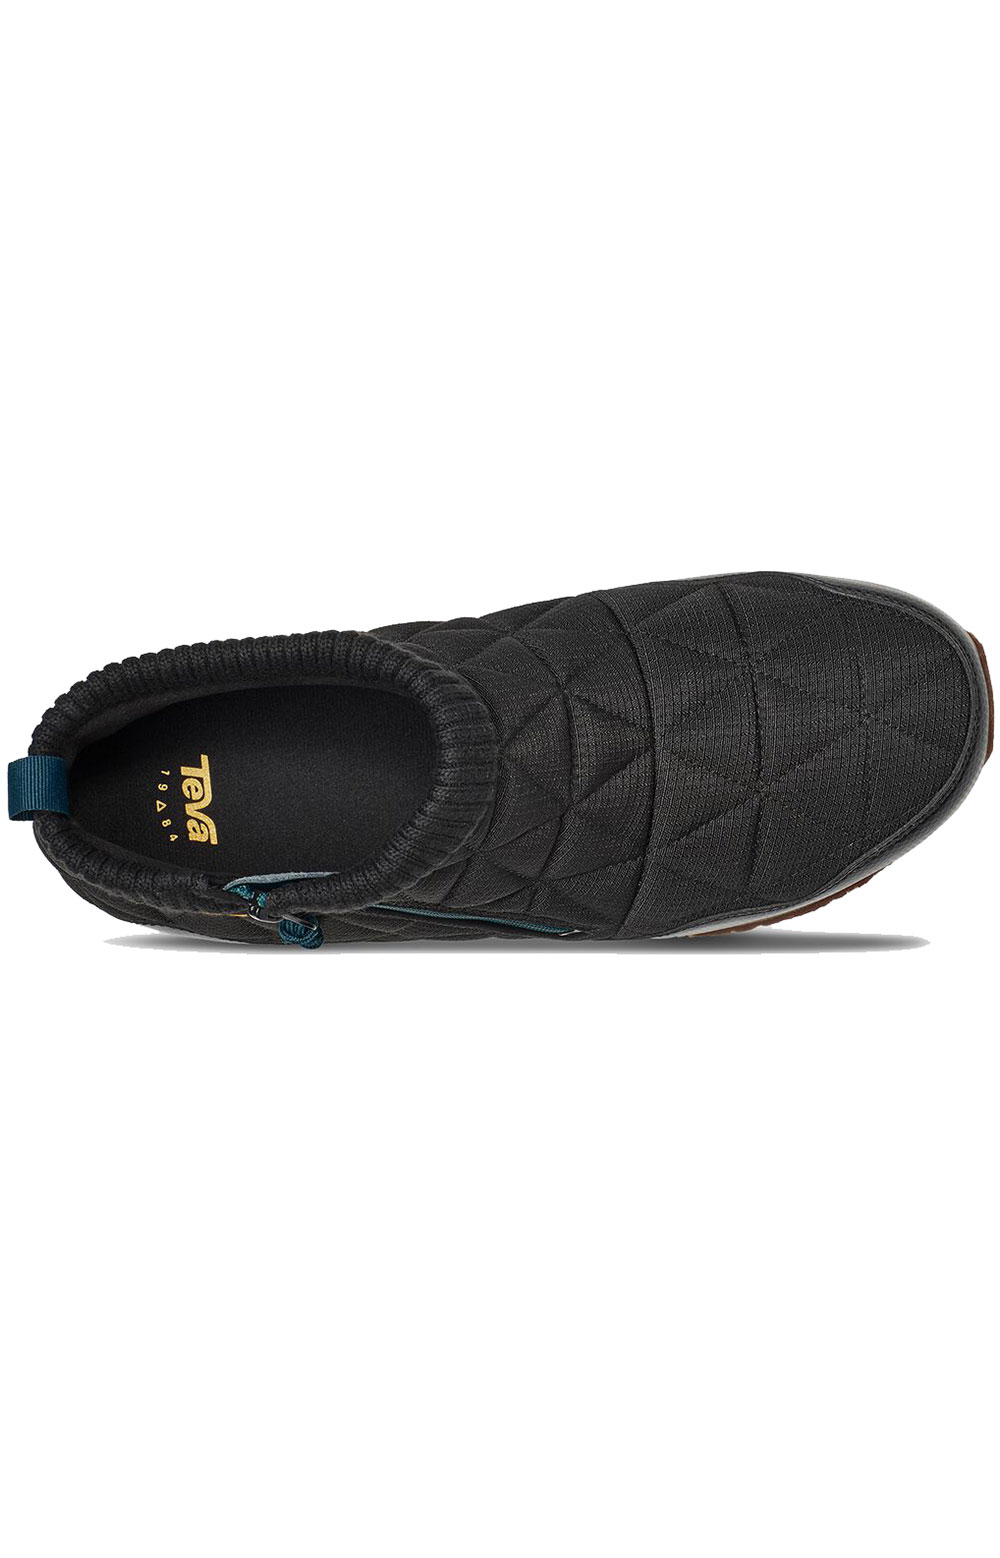 (1125310) ReEMBER MID Shoes - Black  5